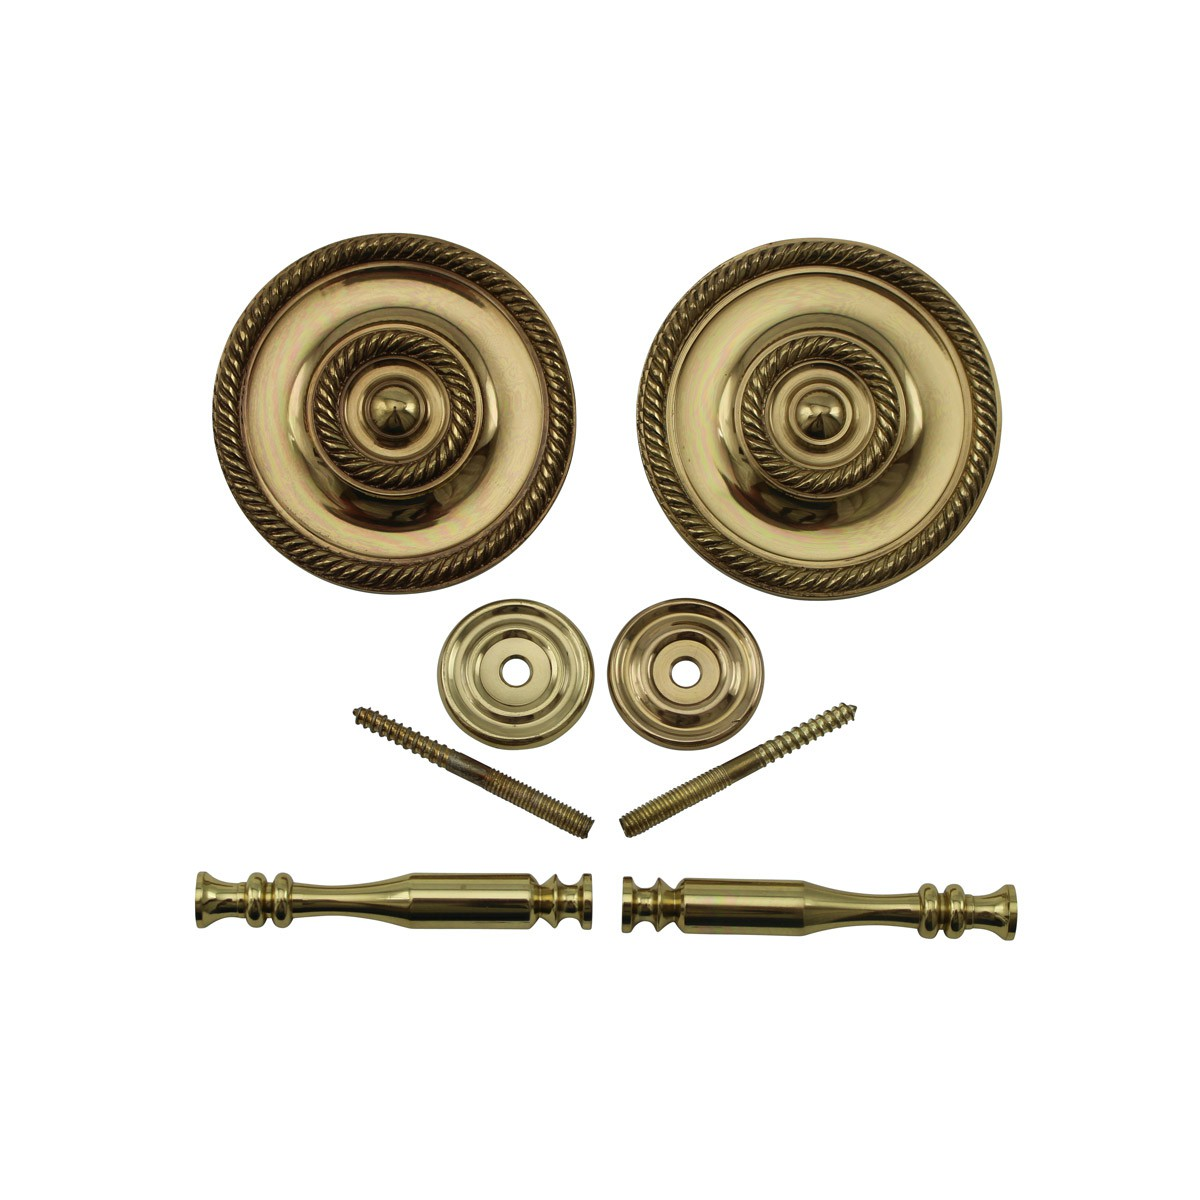 2 Solid Brass Curtain Tieback Holders RSF Finish 314 Dia. Renovators Supply Curtain Tieback Holders Brass Curtain Tieback Holders Traditional Curtain Holders